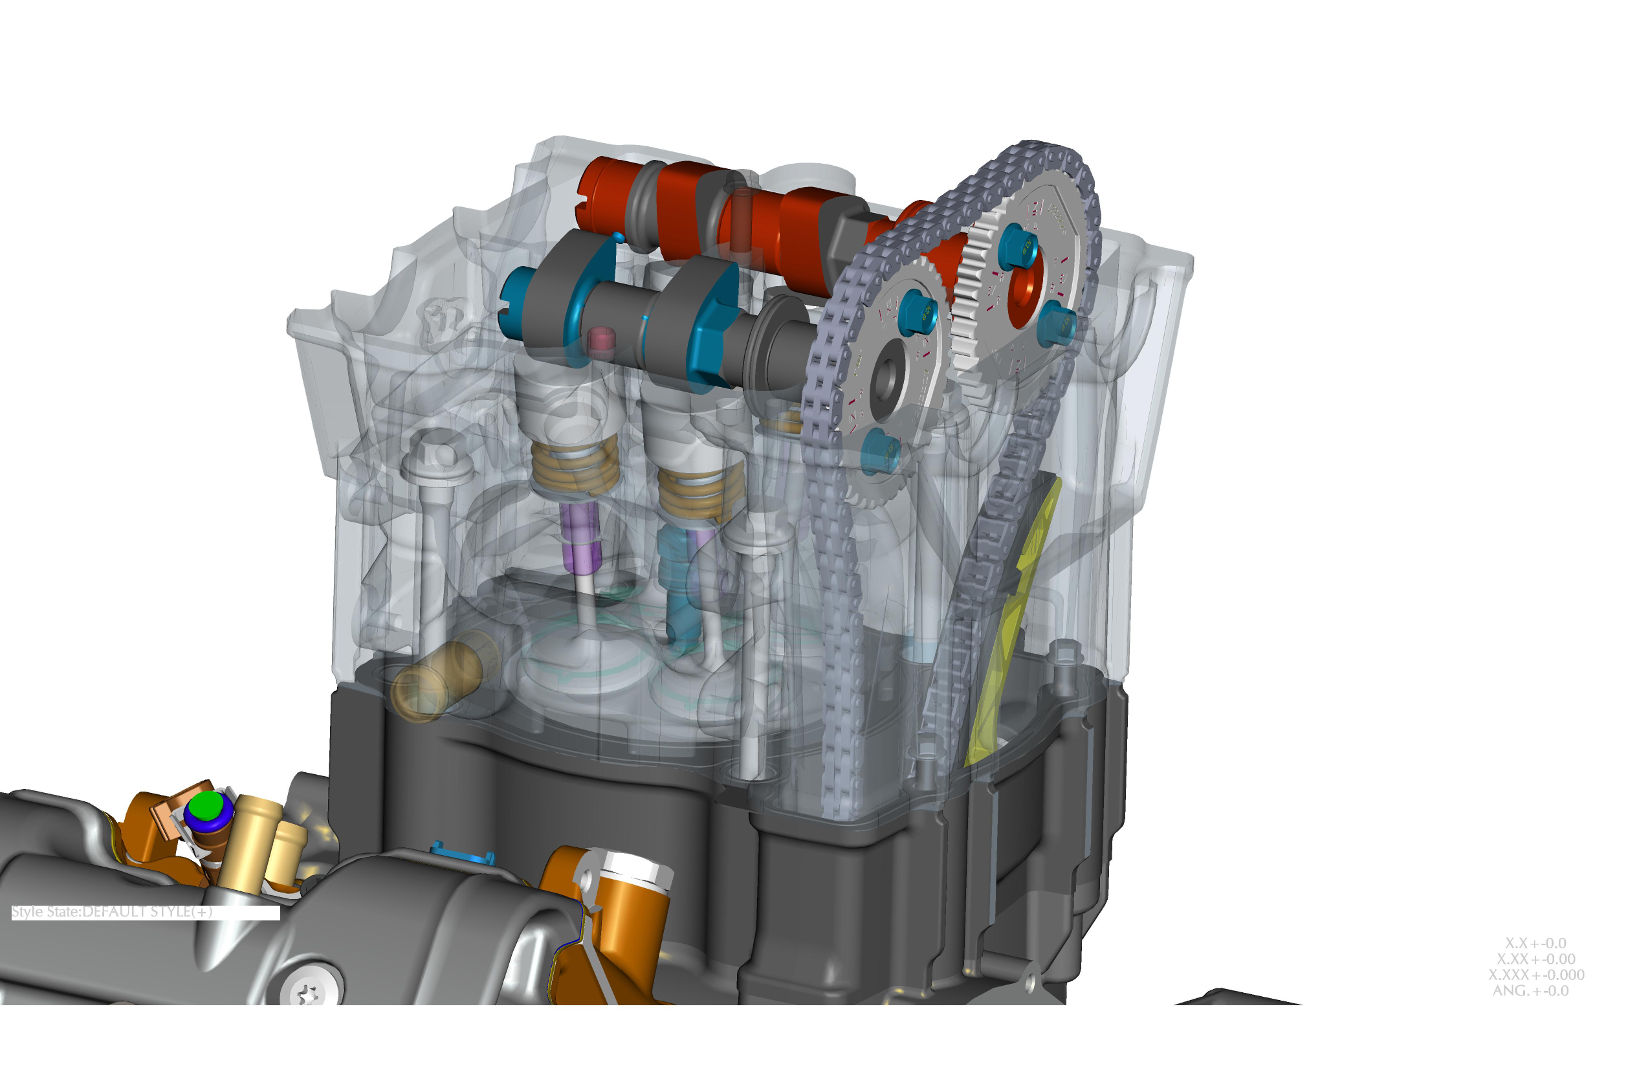 Cad Drawings Reveal Indian Scout Engine Design 2001 Wiring Diagram